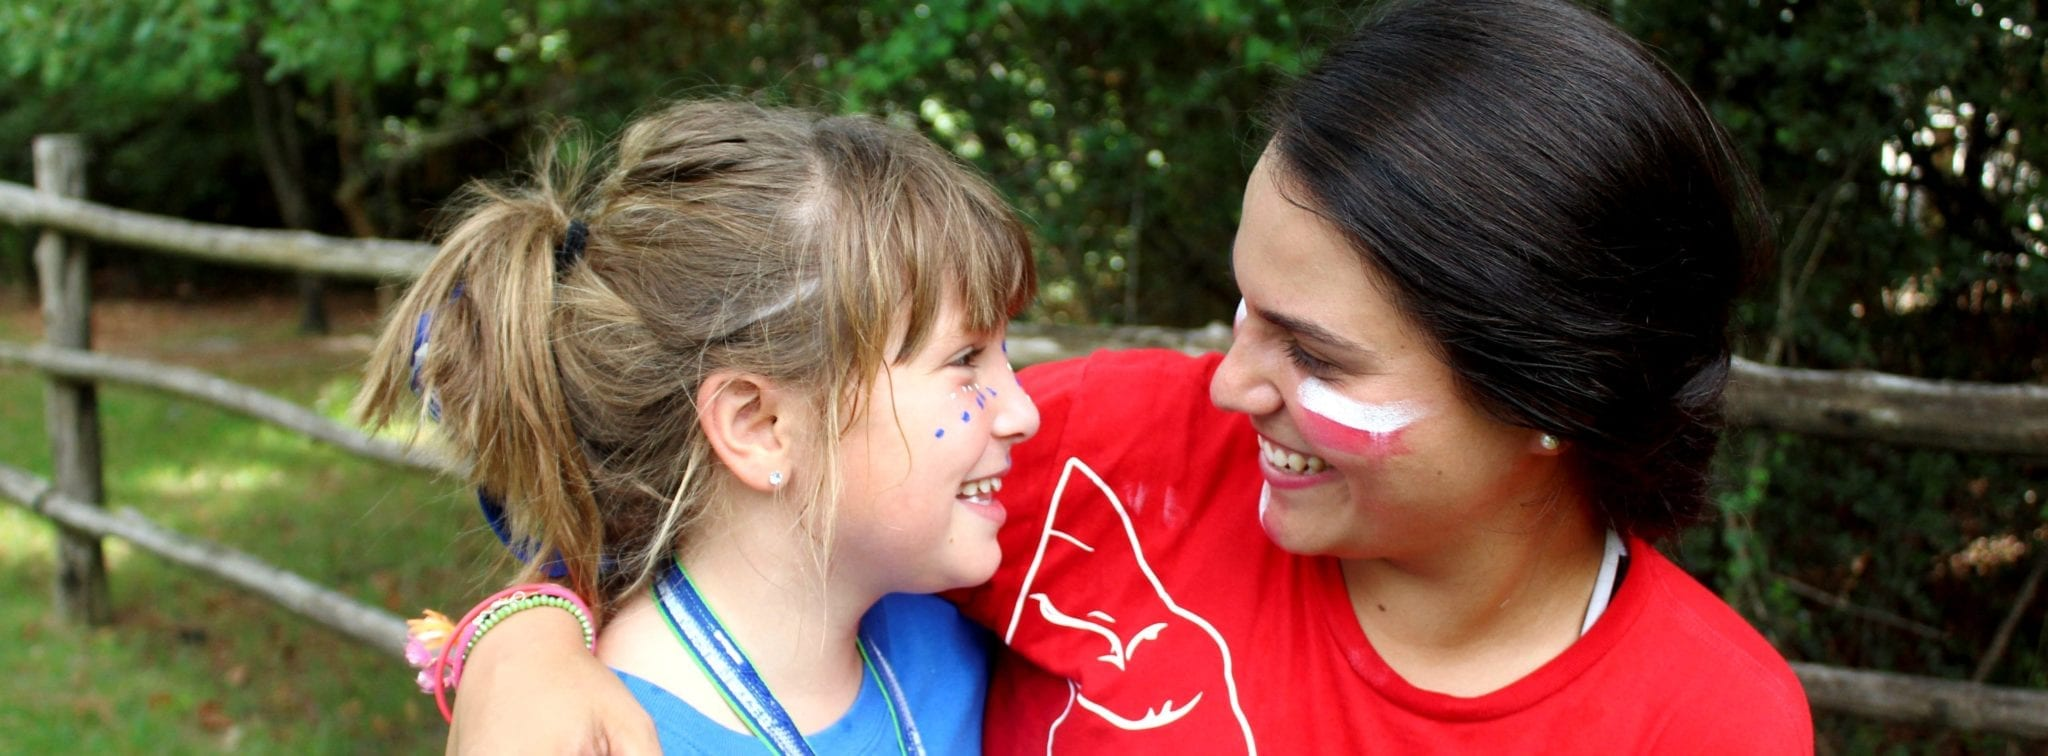 Close-up of a camp counselor sharing a smile with a camper.